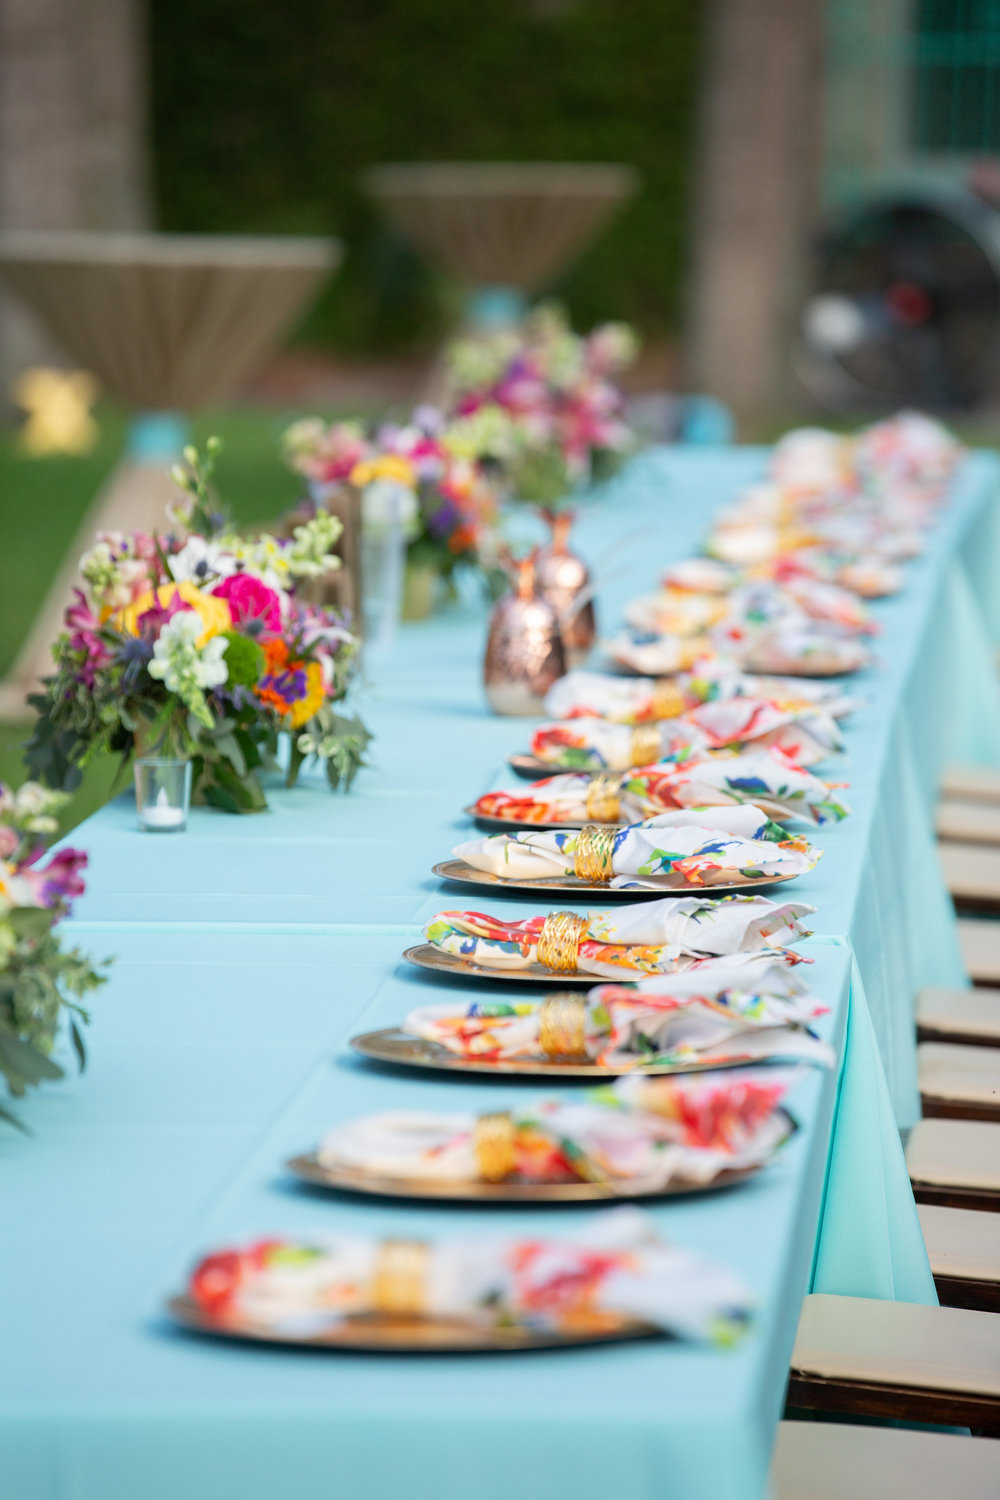 Wedding Head Table.jpg